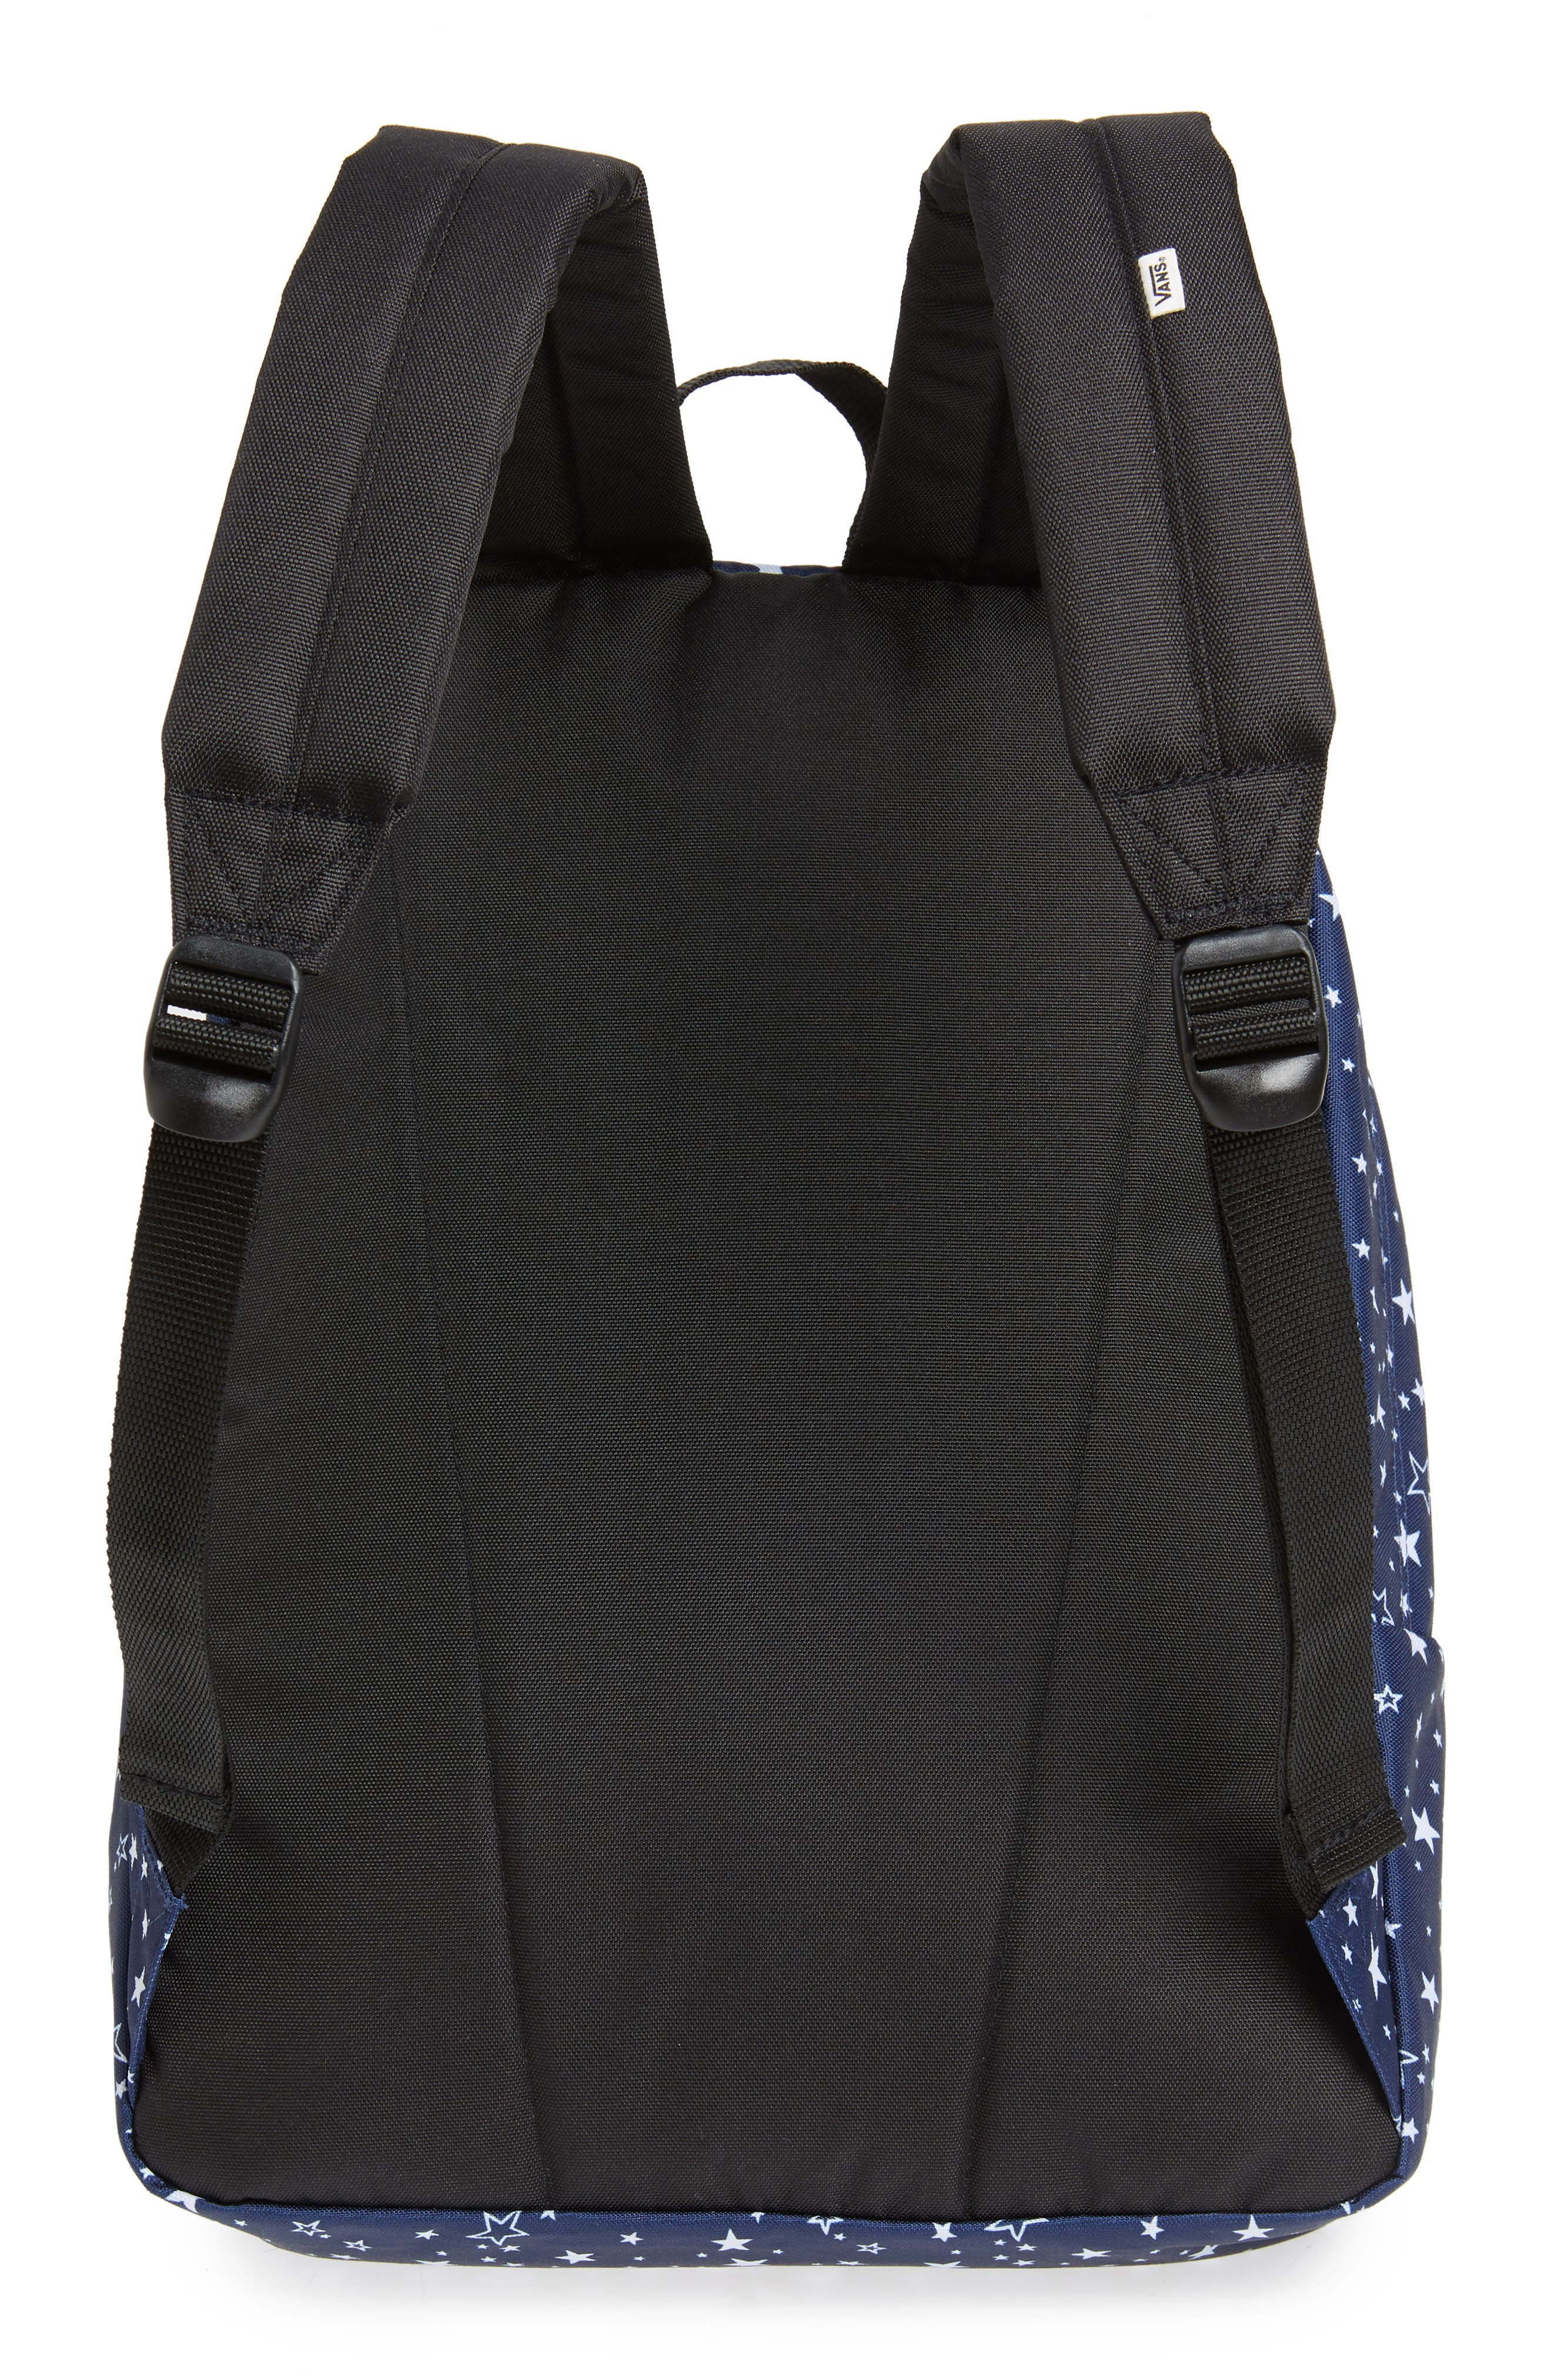 Realm Backpack,                             Alternate thumbnail 3, color,                             MEDIEVAL BLUE STAR